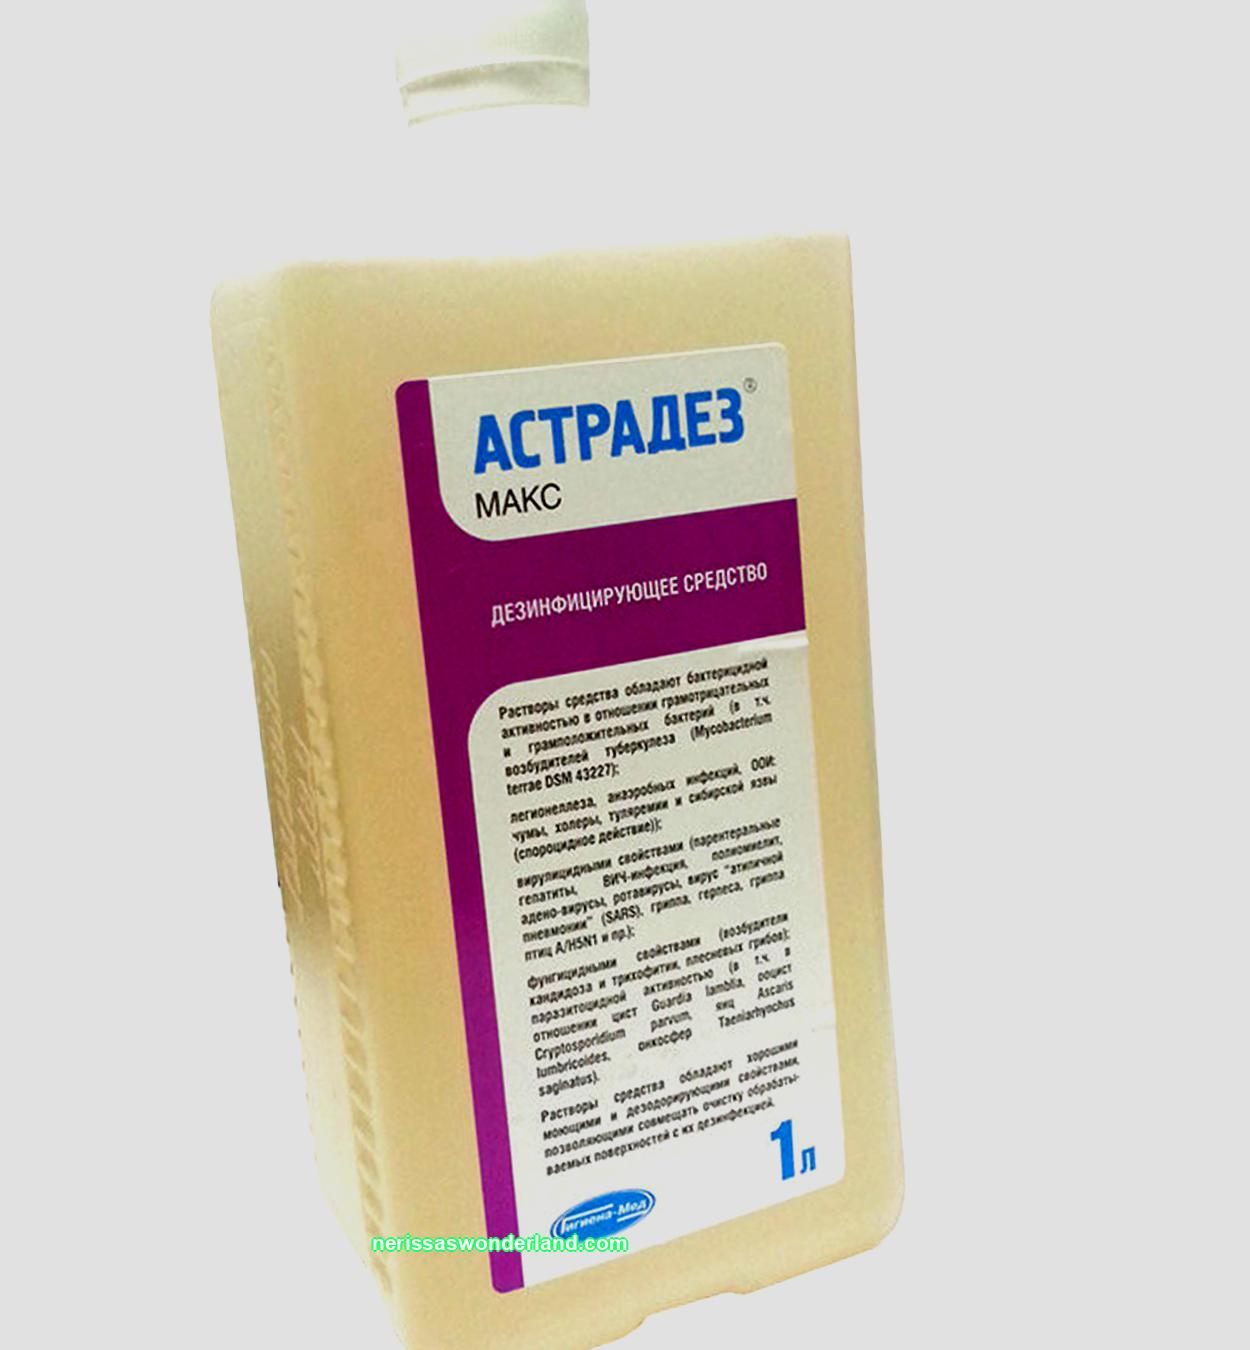 Disinfectant, 1 l, ASTRADEZ MAX, concentrate